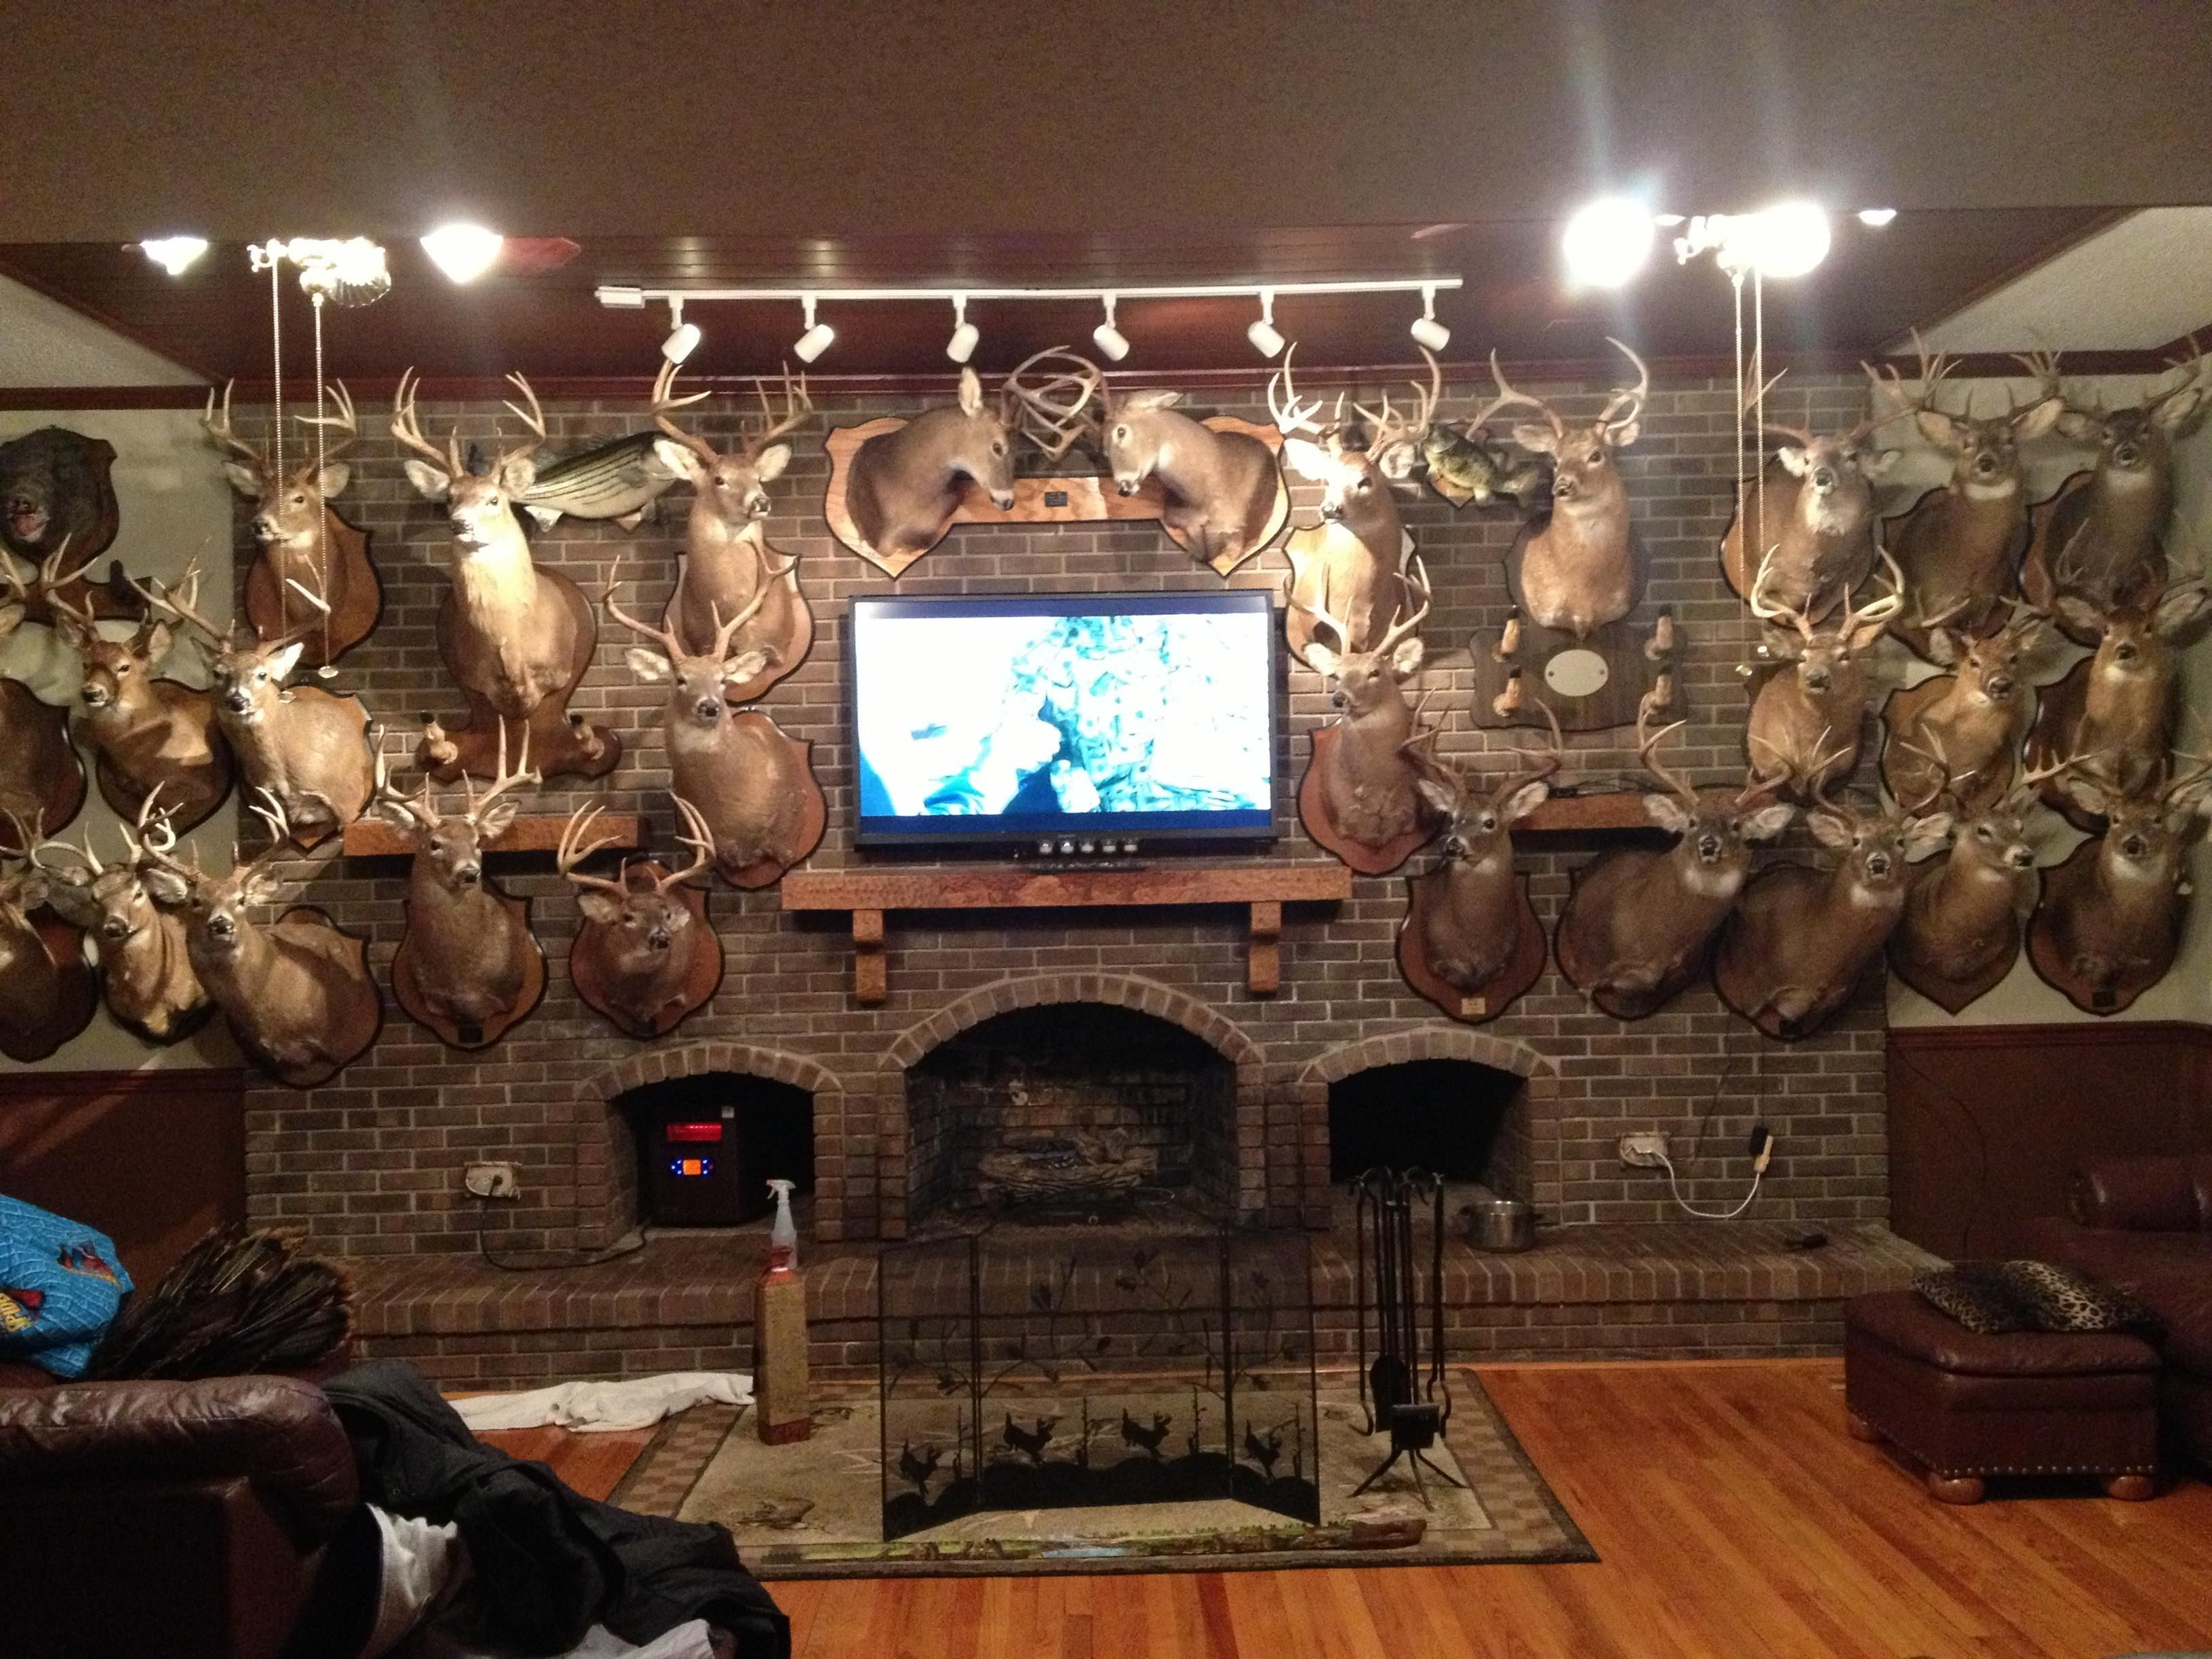 27 amazing man cave design ideas in 2020 man cave man on incredible man cave basement decorating ideas id=55999